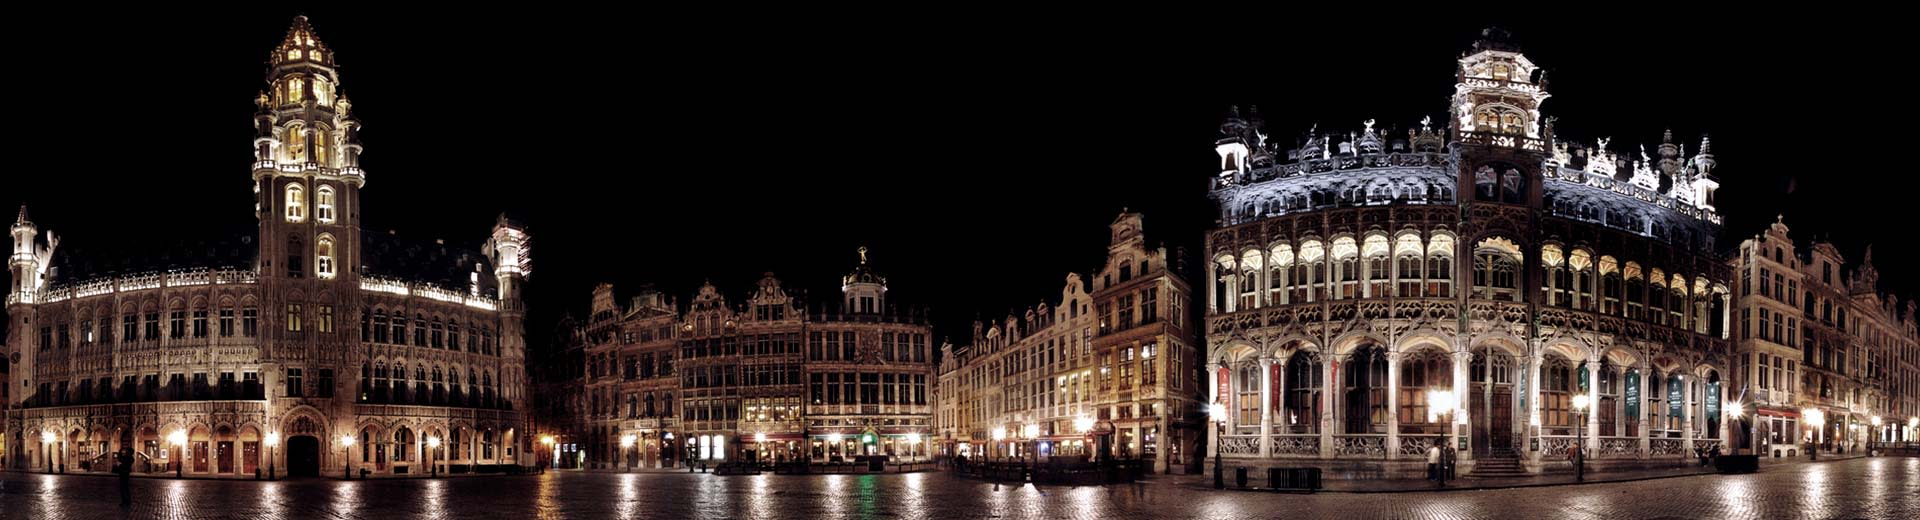 Brussels city center at night with the town hall in view.